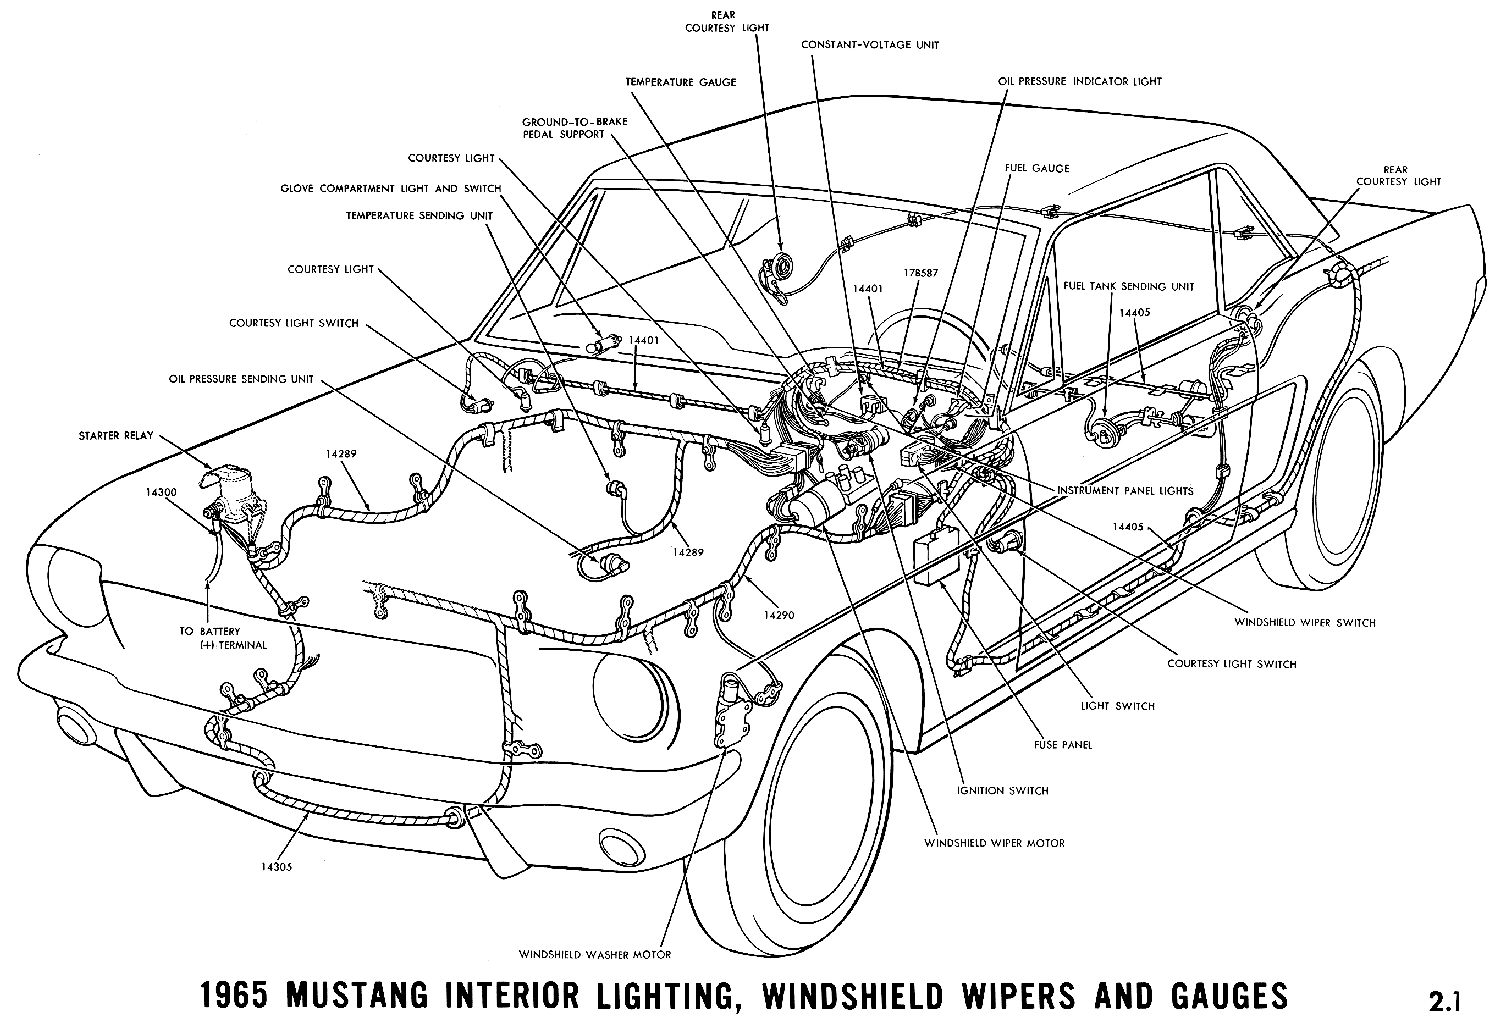 1965 mustang wiring diagrams average joe restoration 1965 mustang interior lights windshield wiper and gauges pictorial or schematic asfbconference2016 Gallery